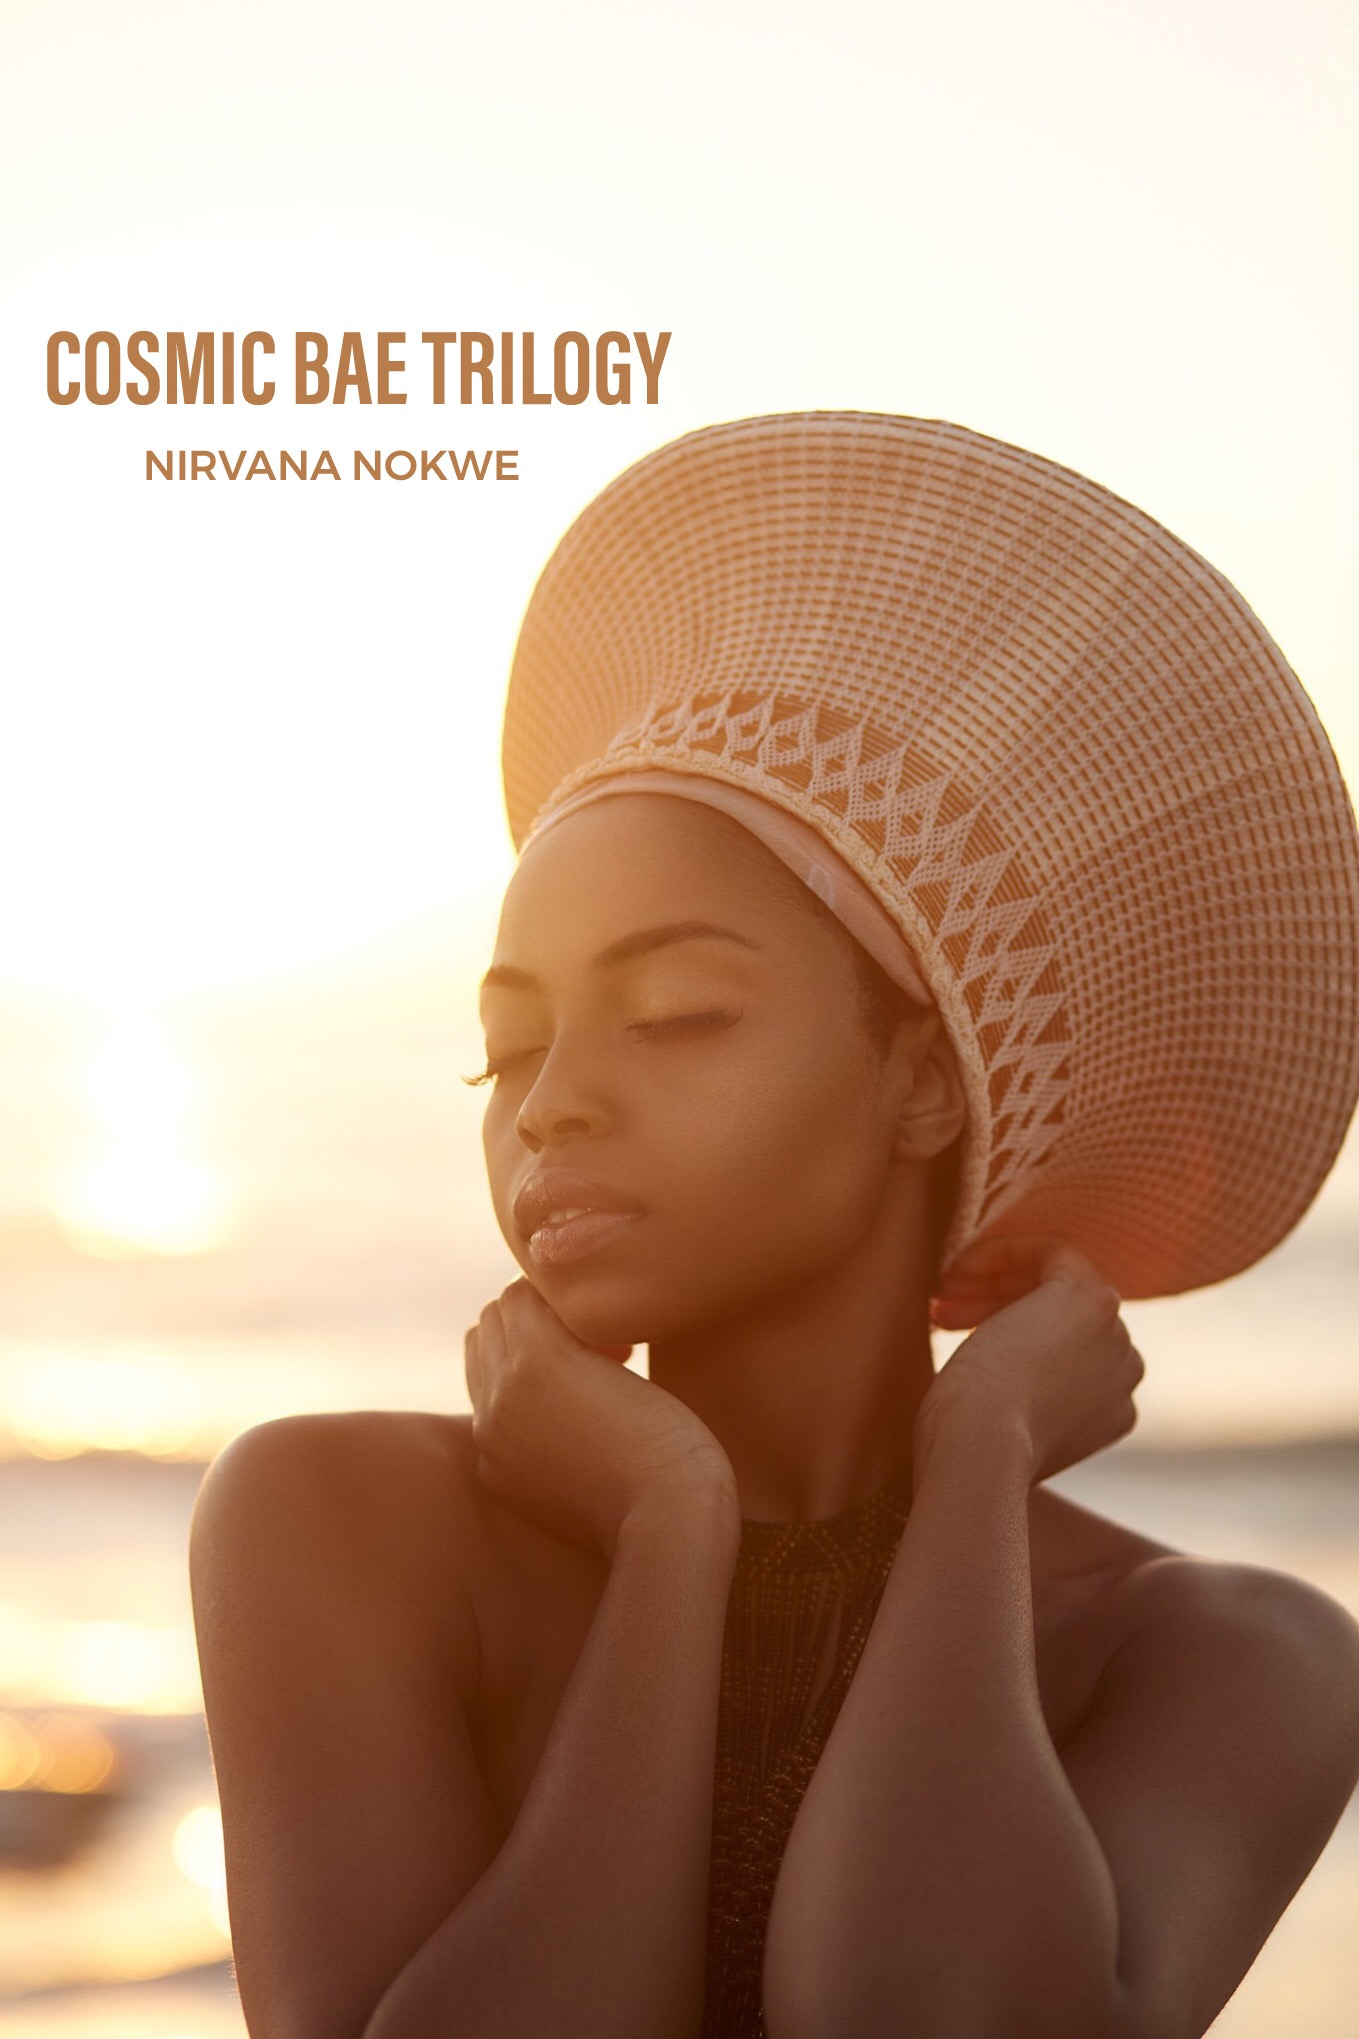 nirvana nokwe Nirvana Nokwe Announces New 'Cosmic Bae Trilogy III' Project On The Way image3